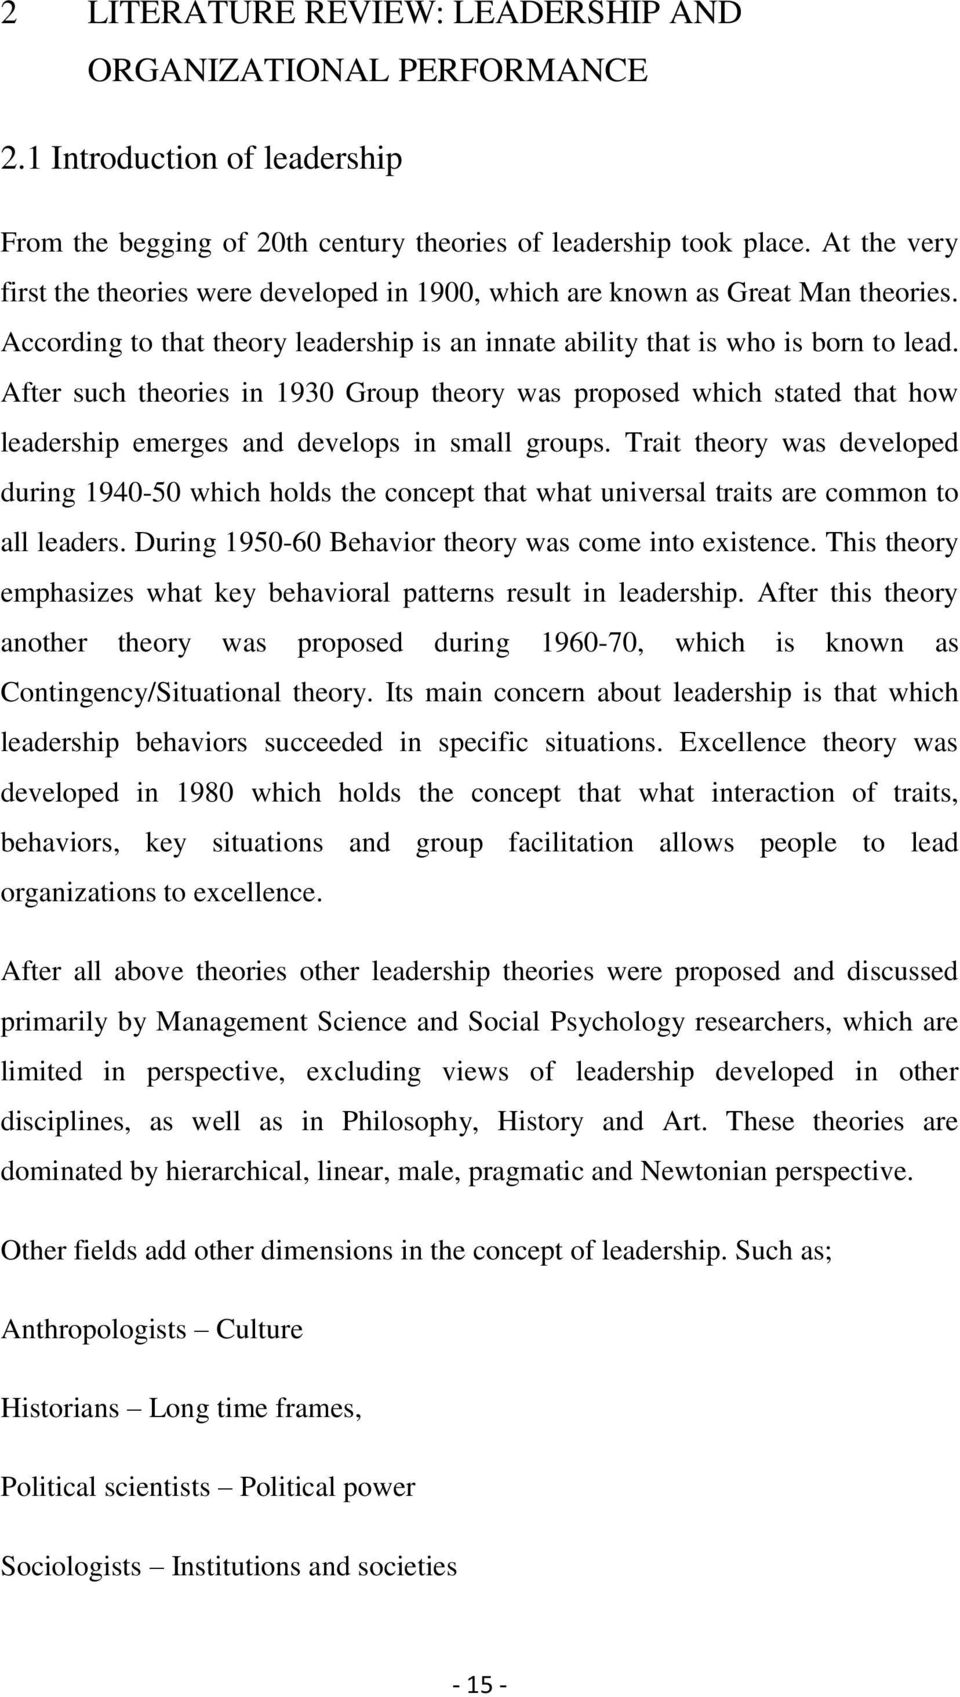 After such theories in 1930 Group theory was proposed which stated that how leadership emerges and develops in small groups.